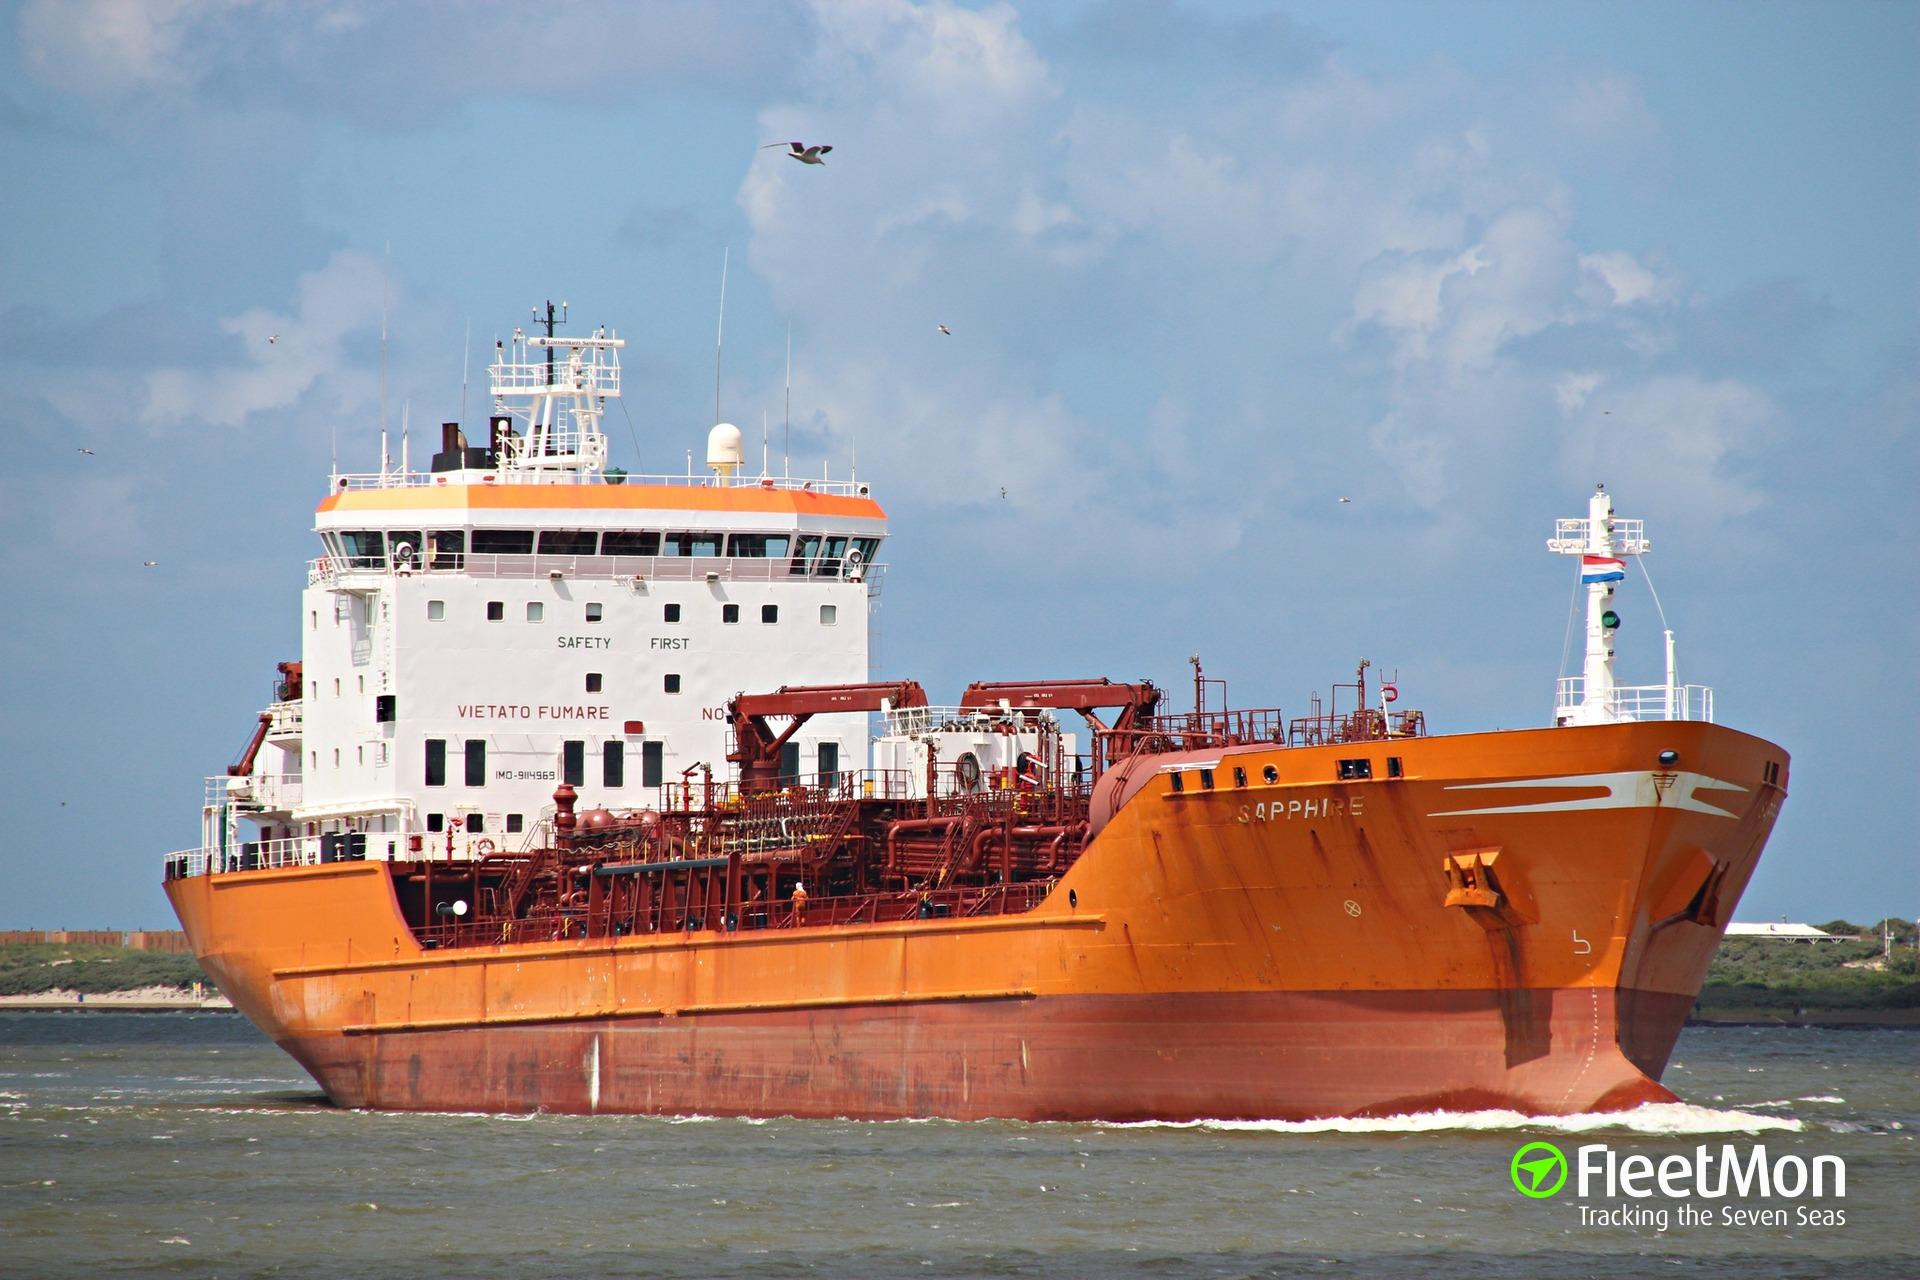 Product tanker Sapphire troubled by rudder failures